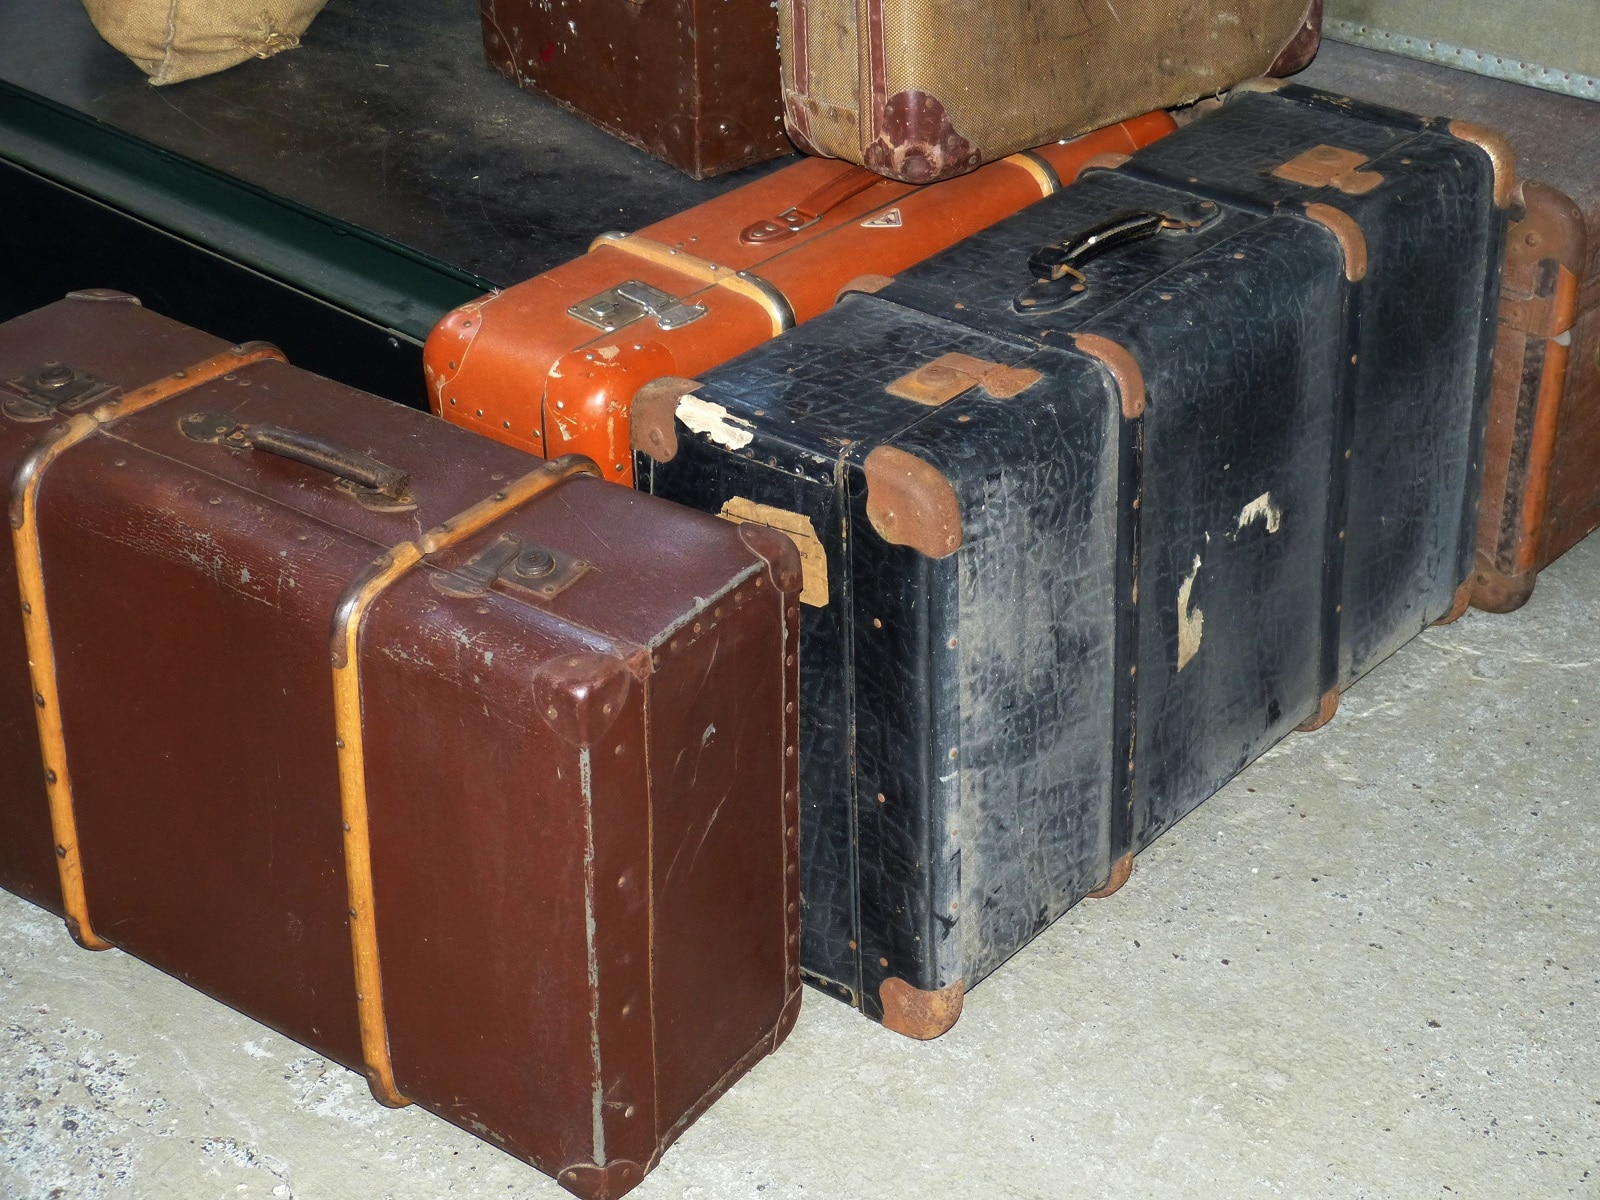 old passenger luggage on trains